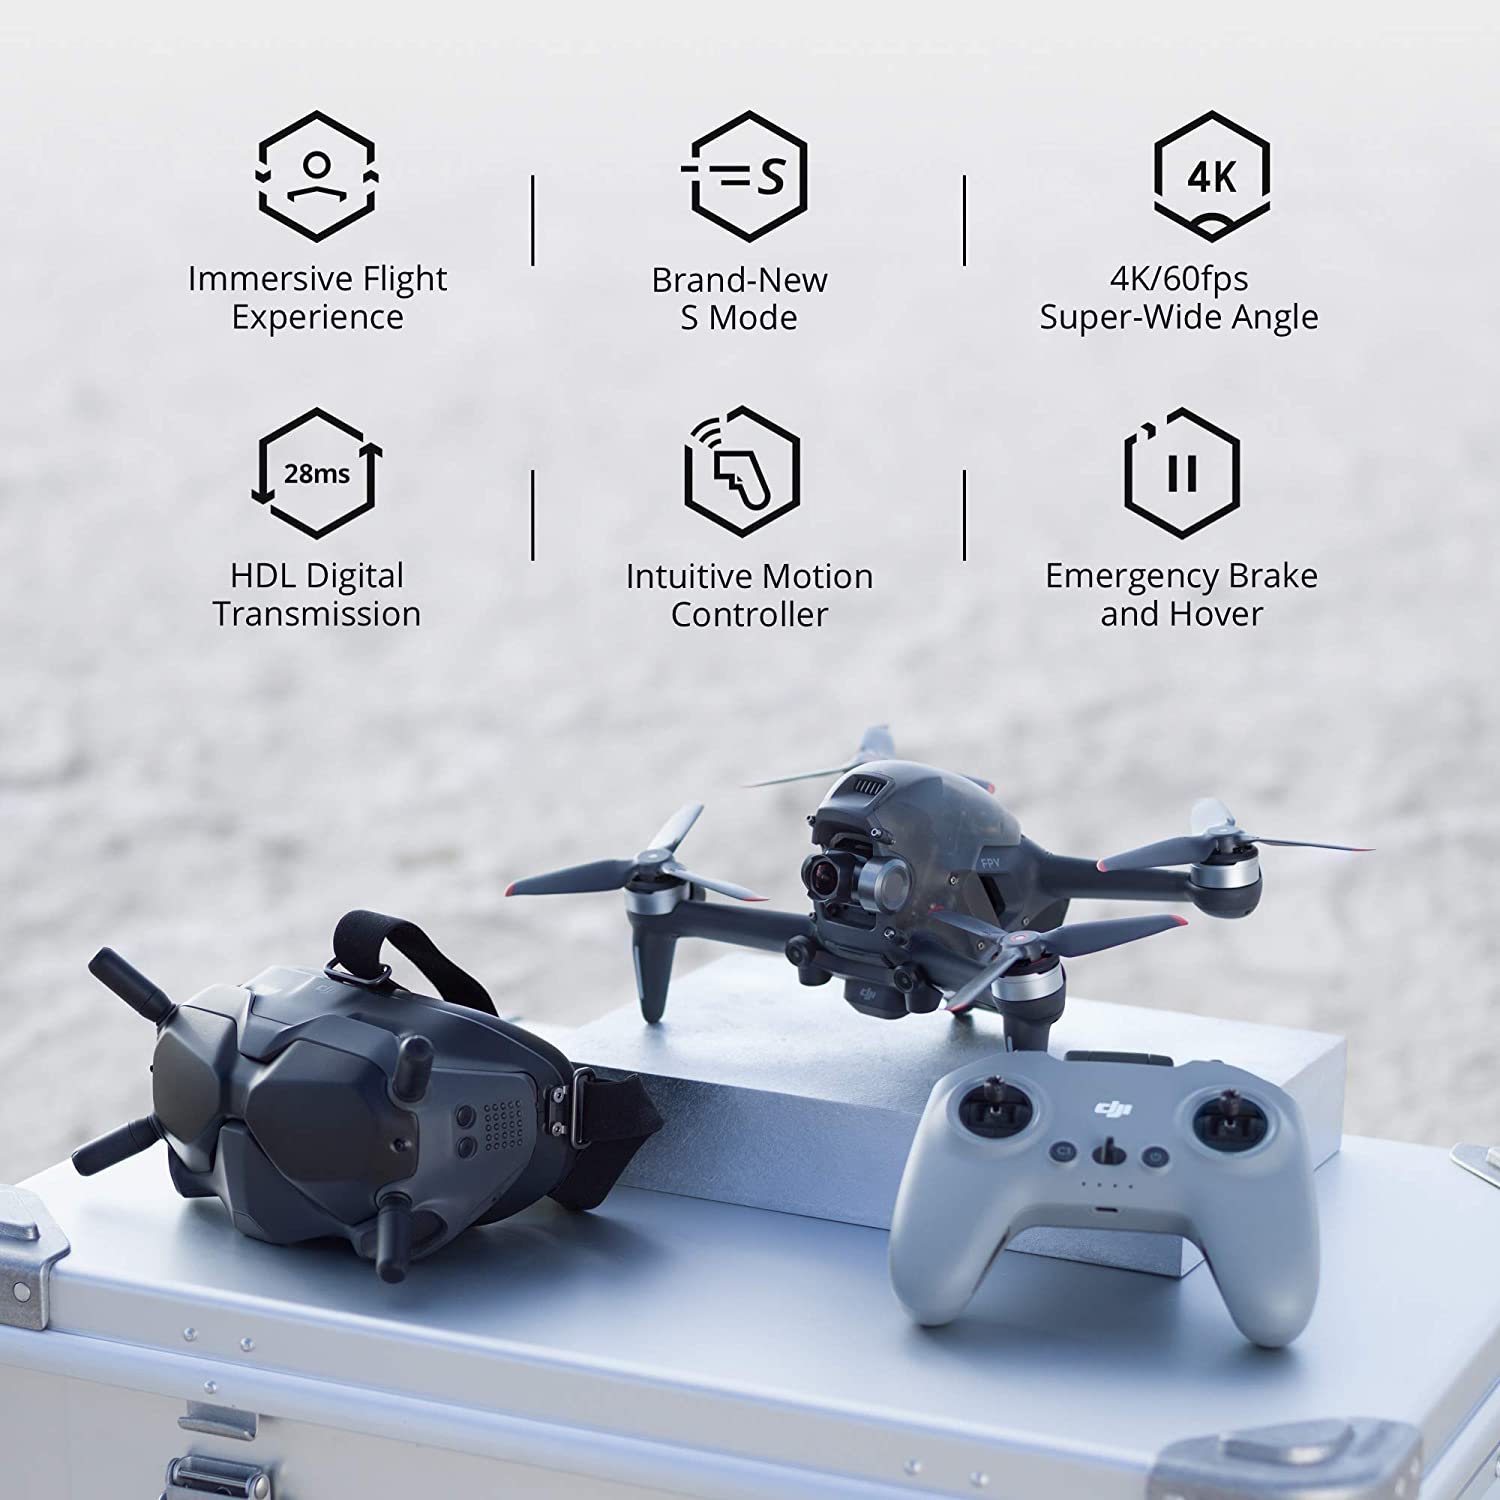 DJI FPV Drone Main Features